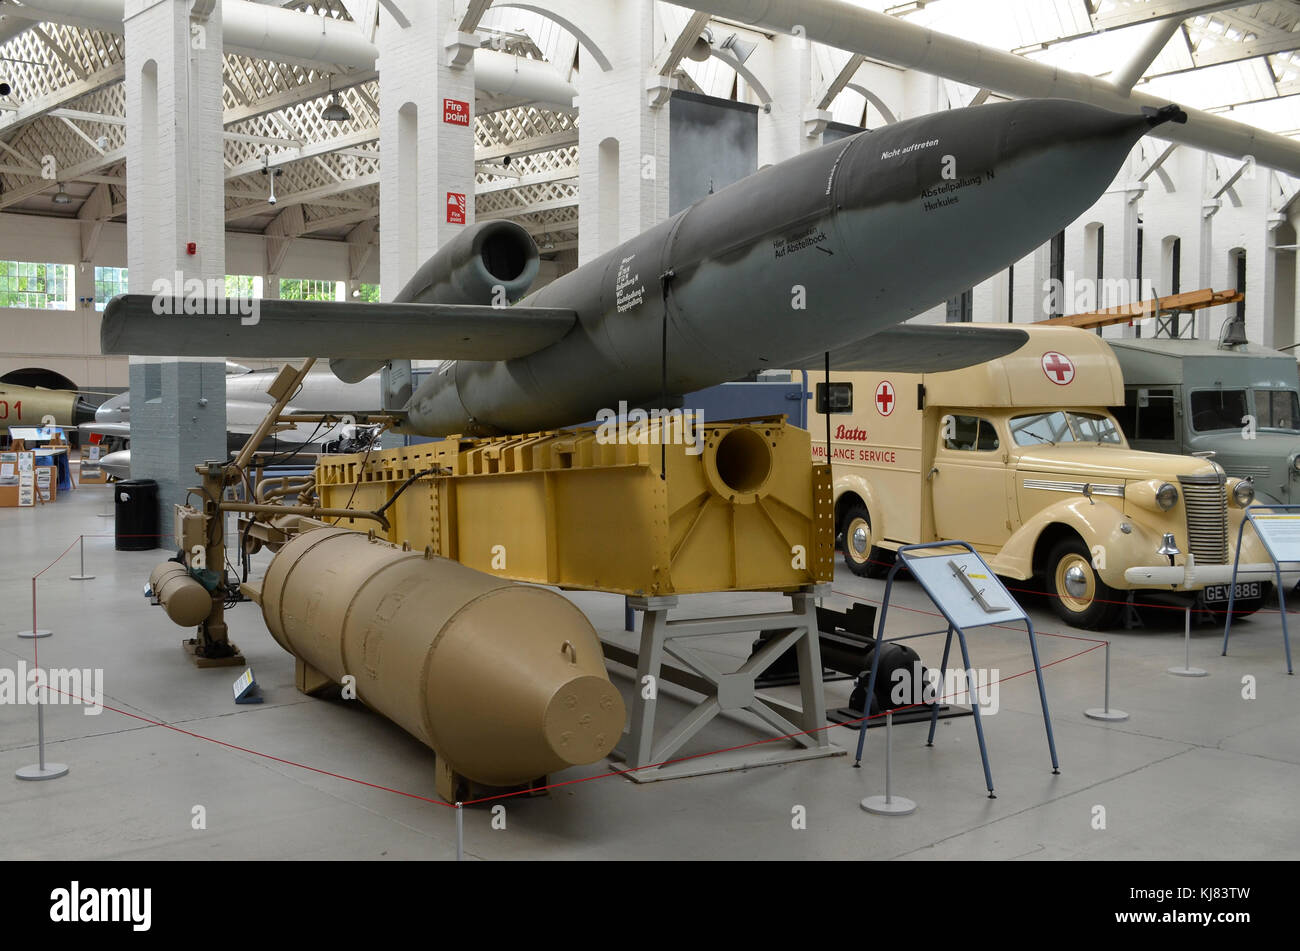 V-1 Flying Bomb with launch ramp, Duxford IWM, UK. The Fieseler Fi 103 or V-1 was also commonly known as the Doodlebug - Stock Image